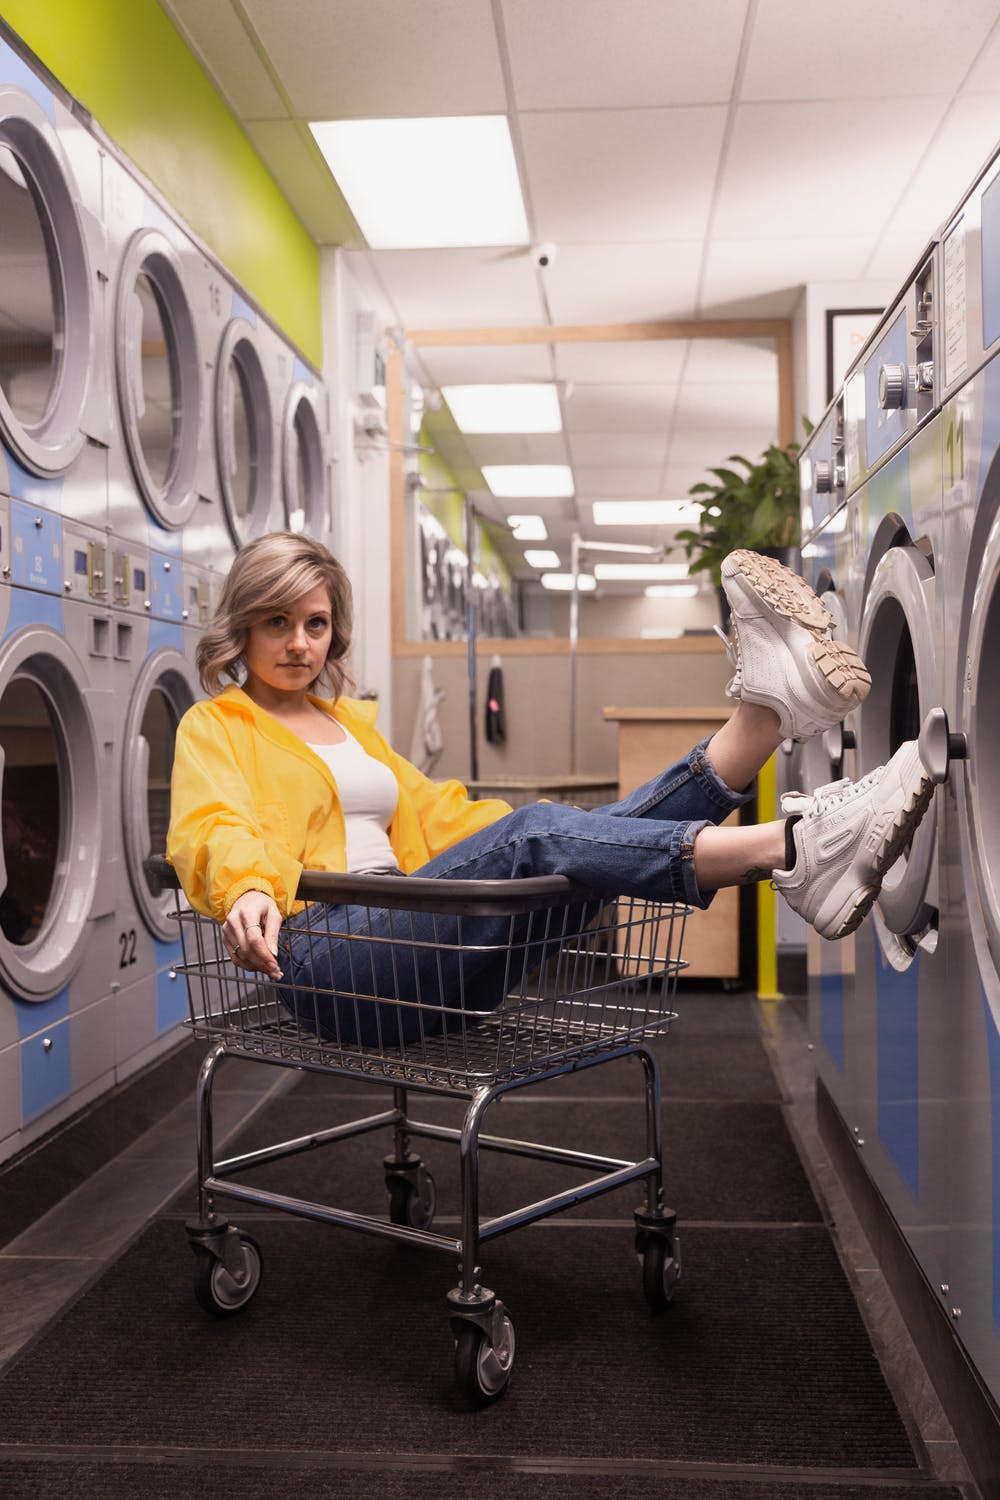 Buyer's Guide on Washing Machine selection